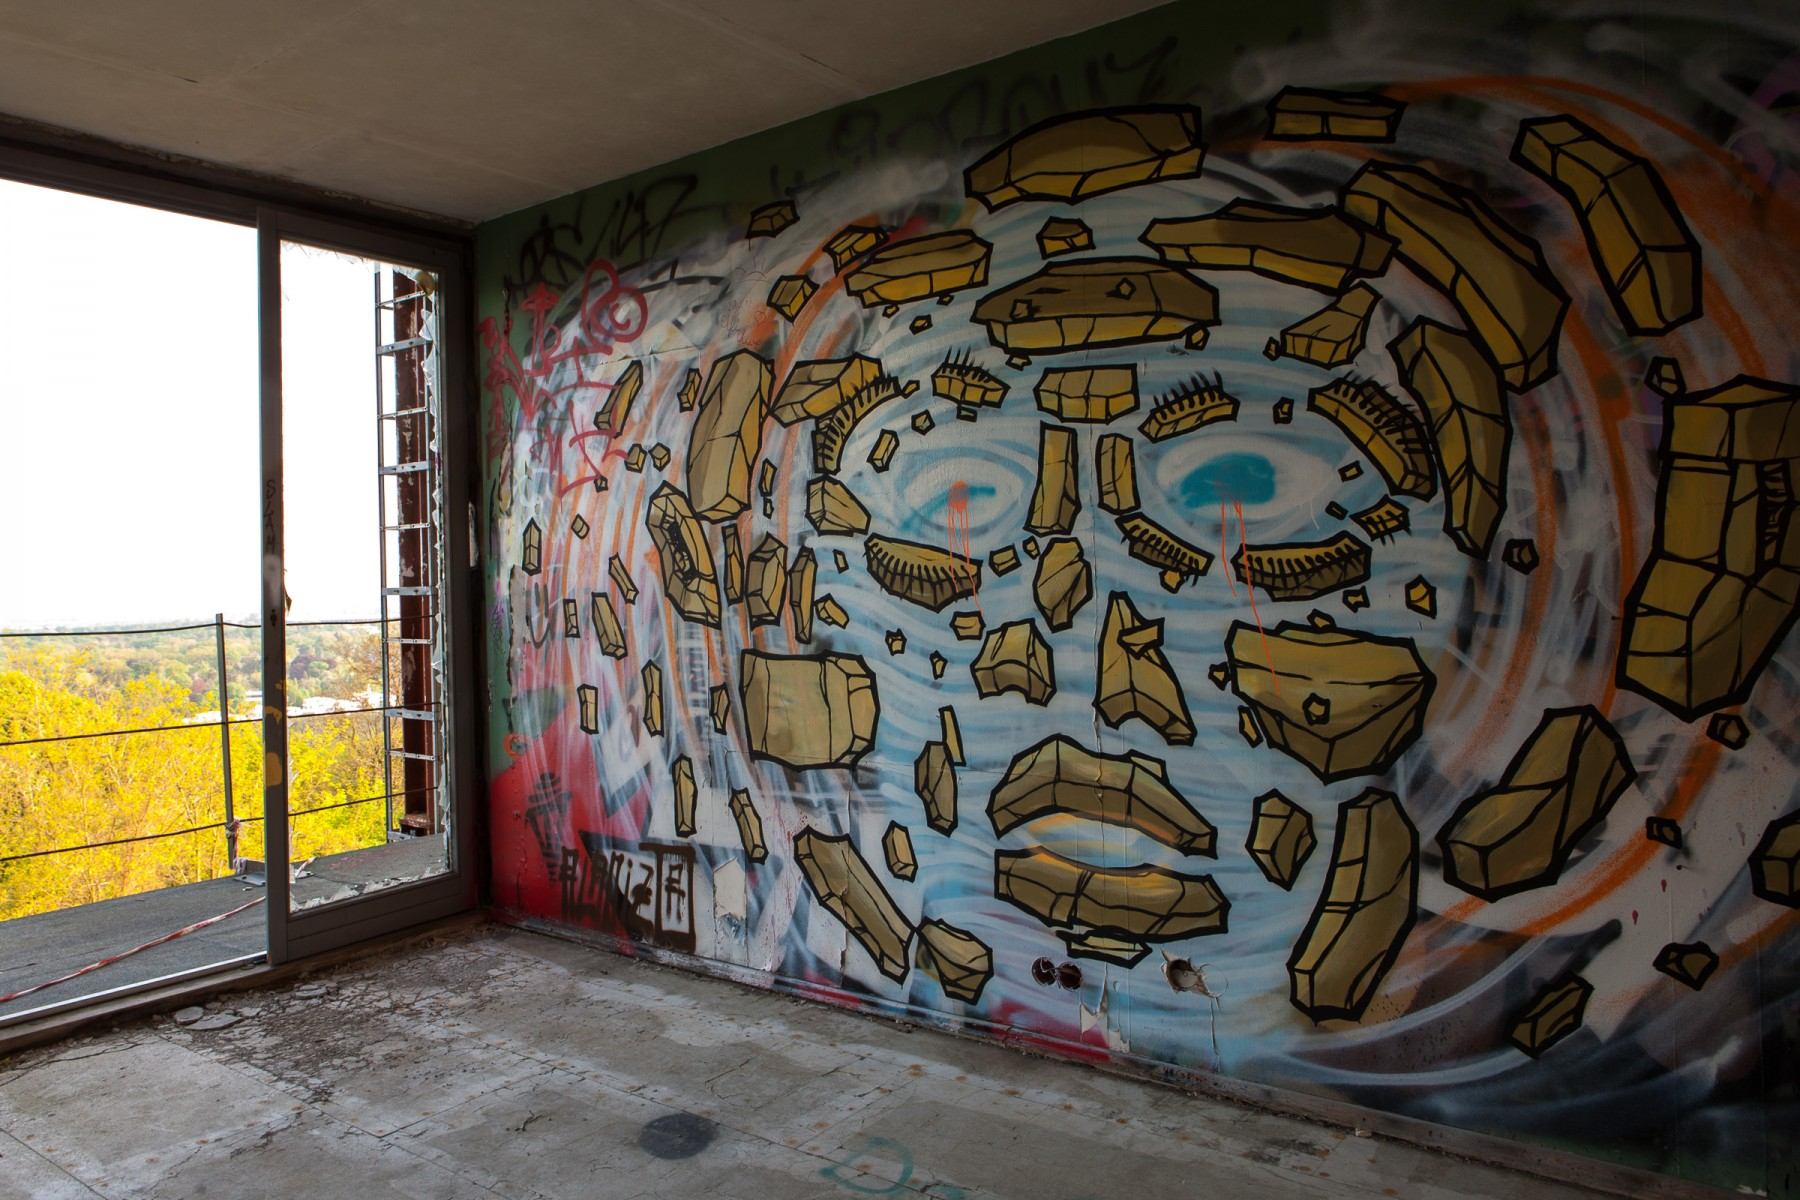 Graffiti Murals at Teufelsberg